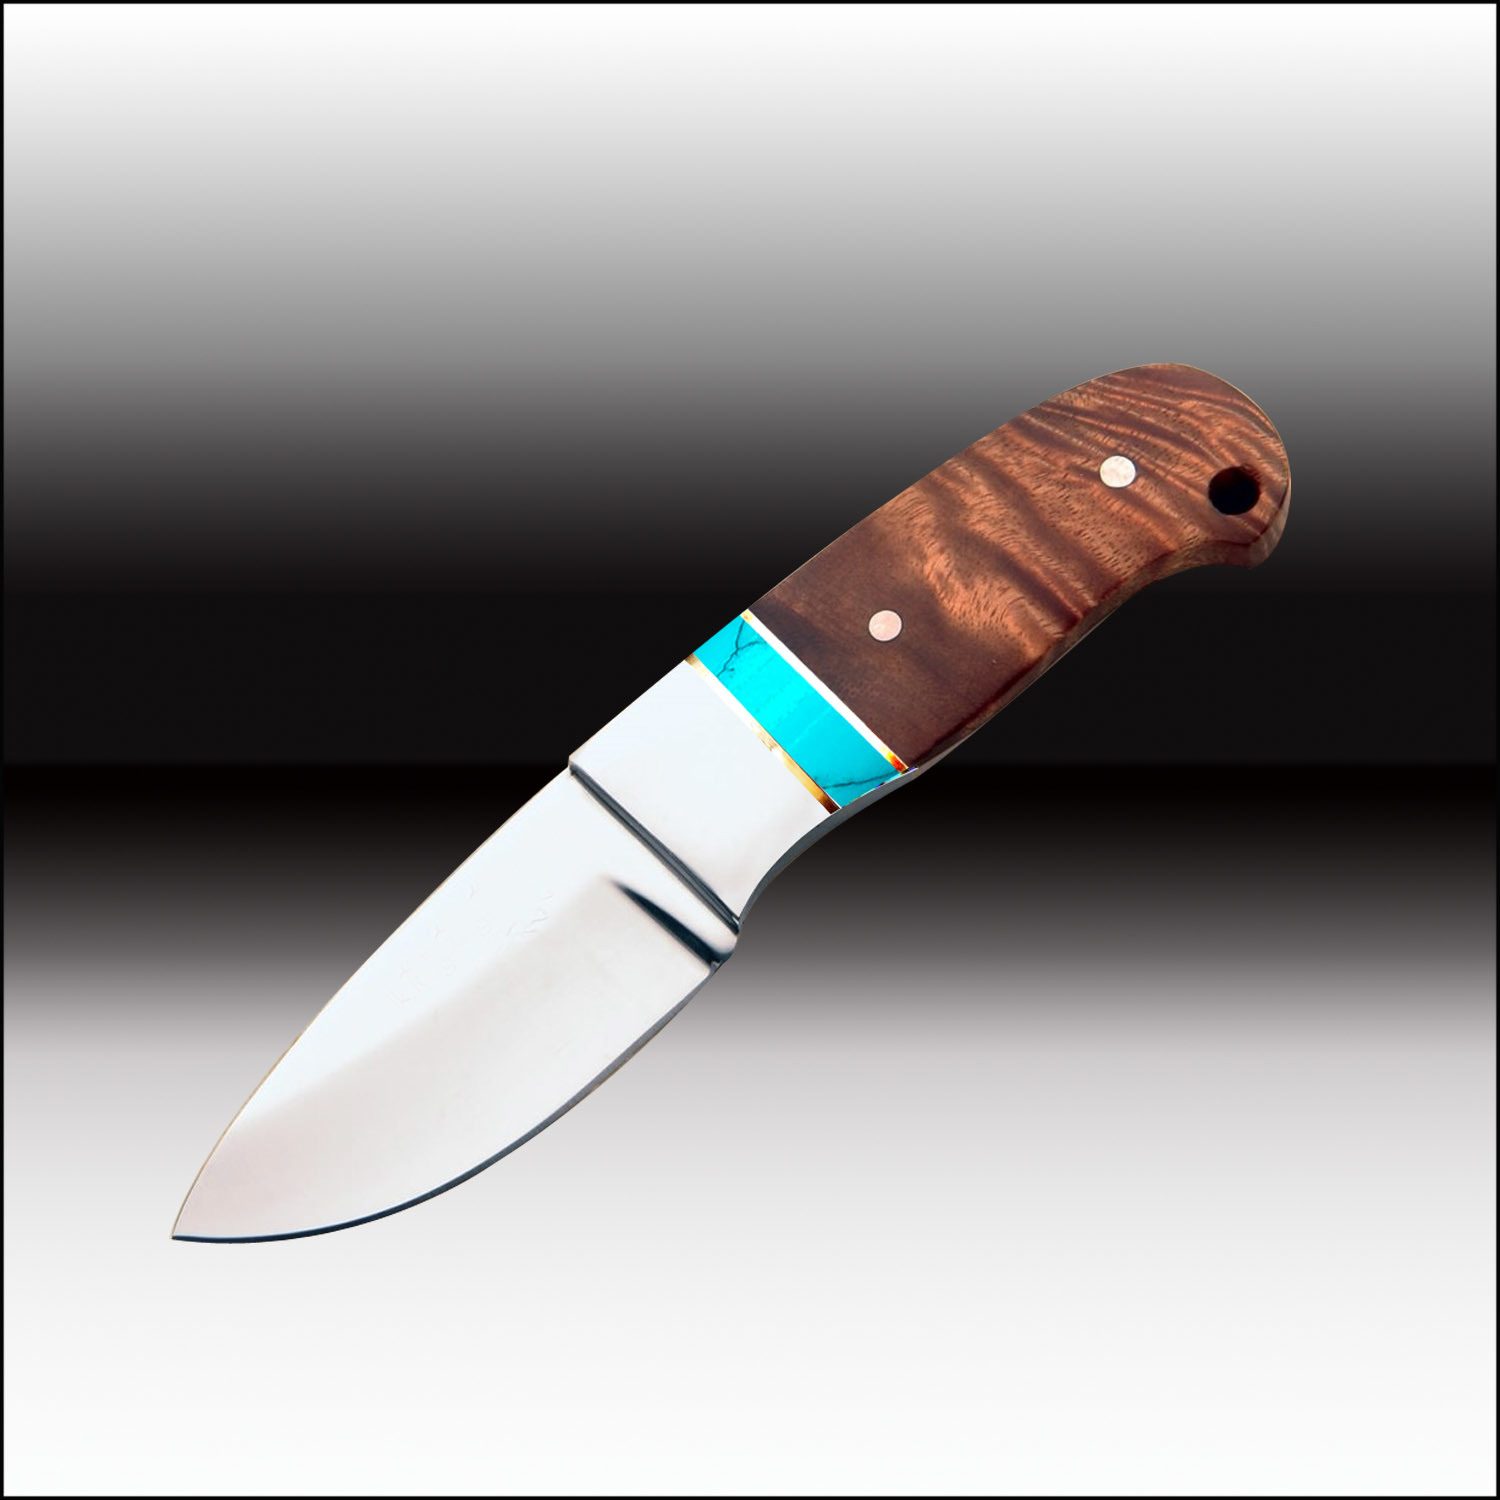 New Pretty Small Hunting Knife Fruit Knife